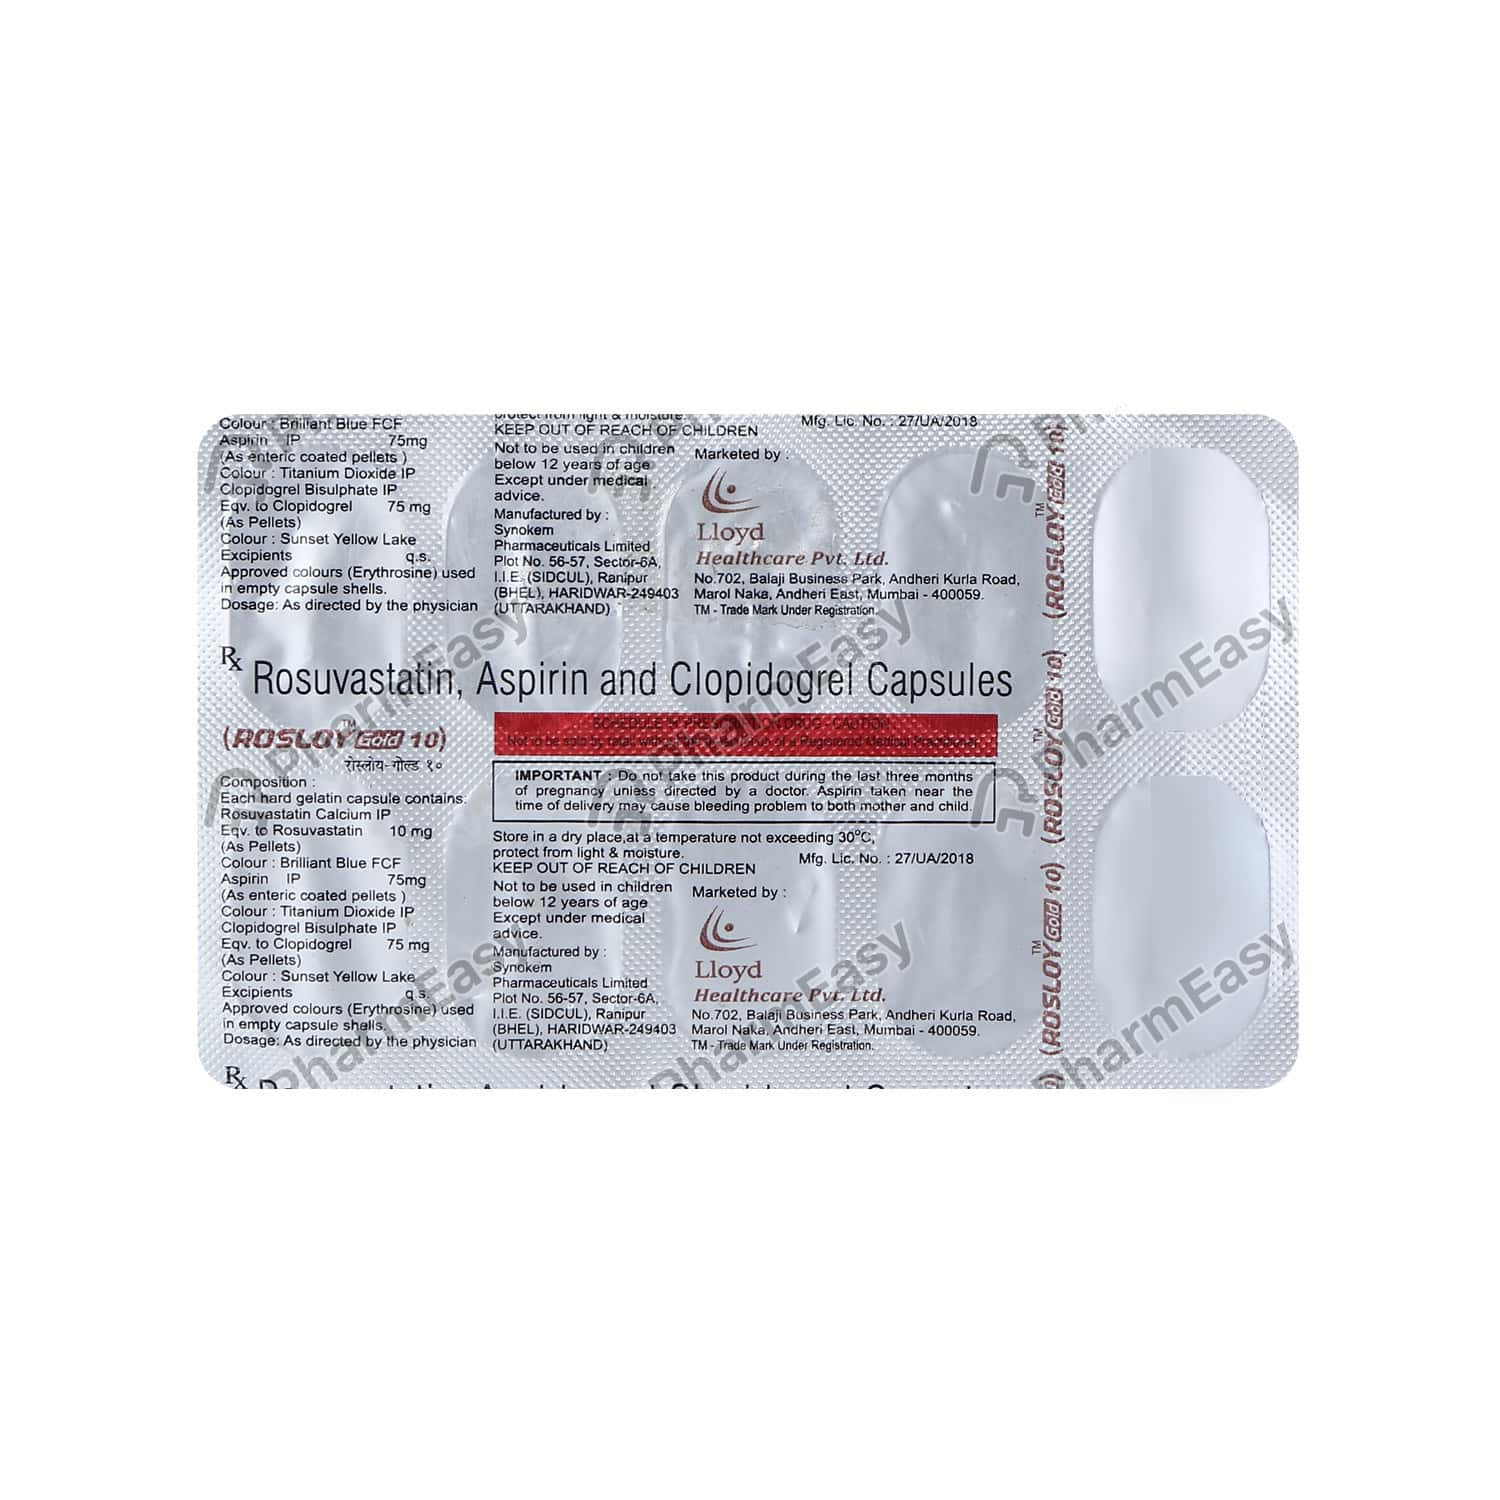 Rosloy Gold 10mg Strip Of 10 Capsules